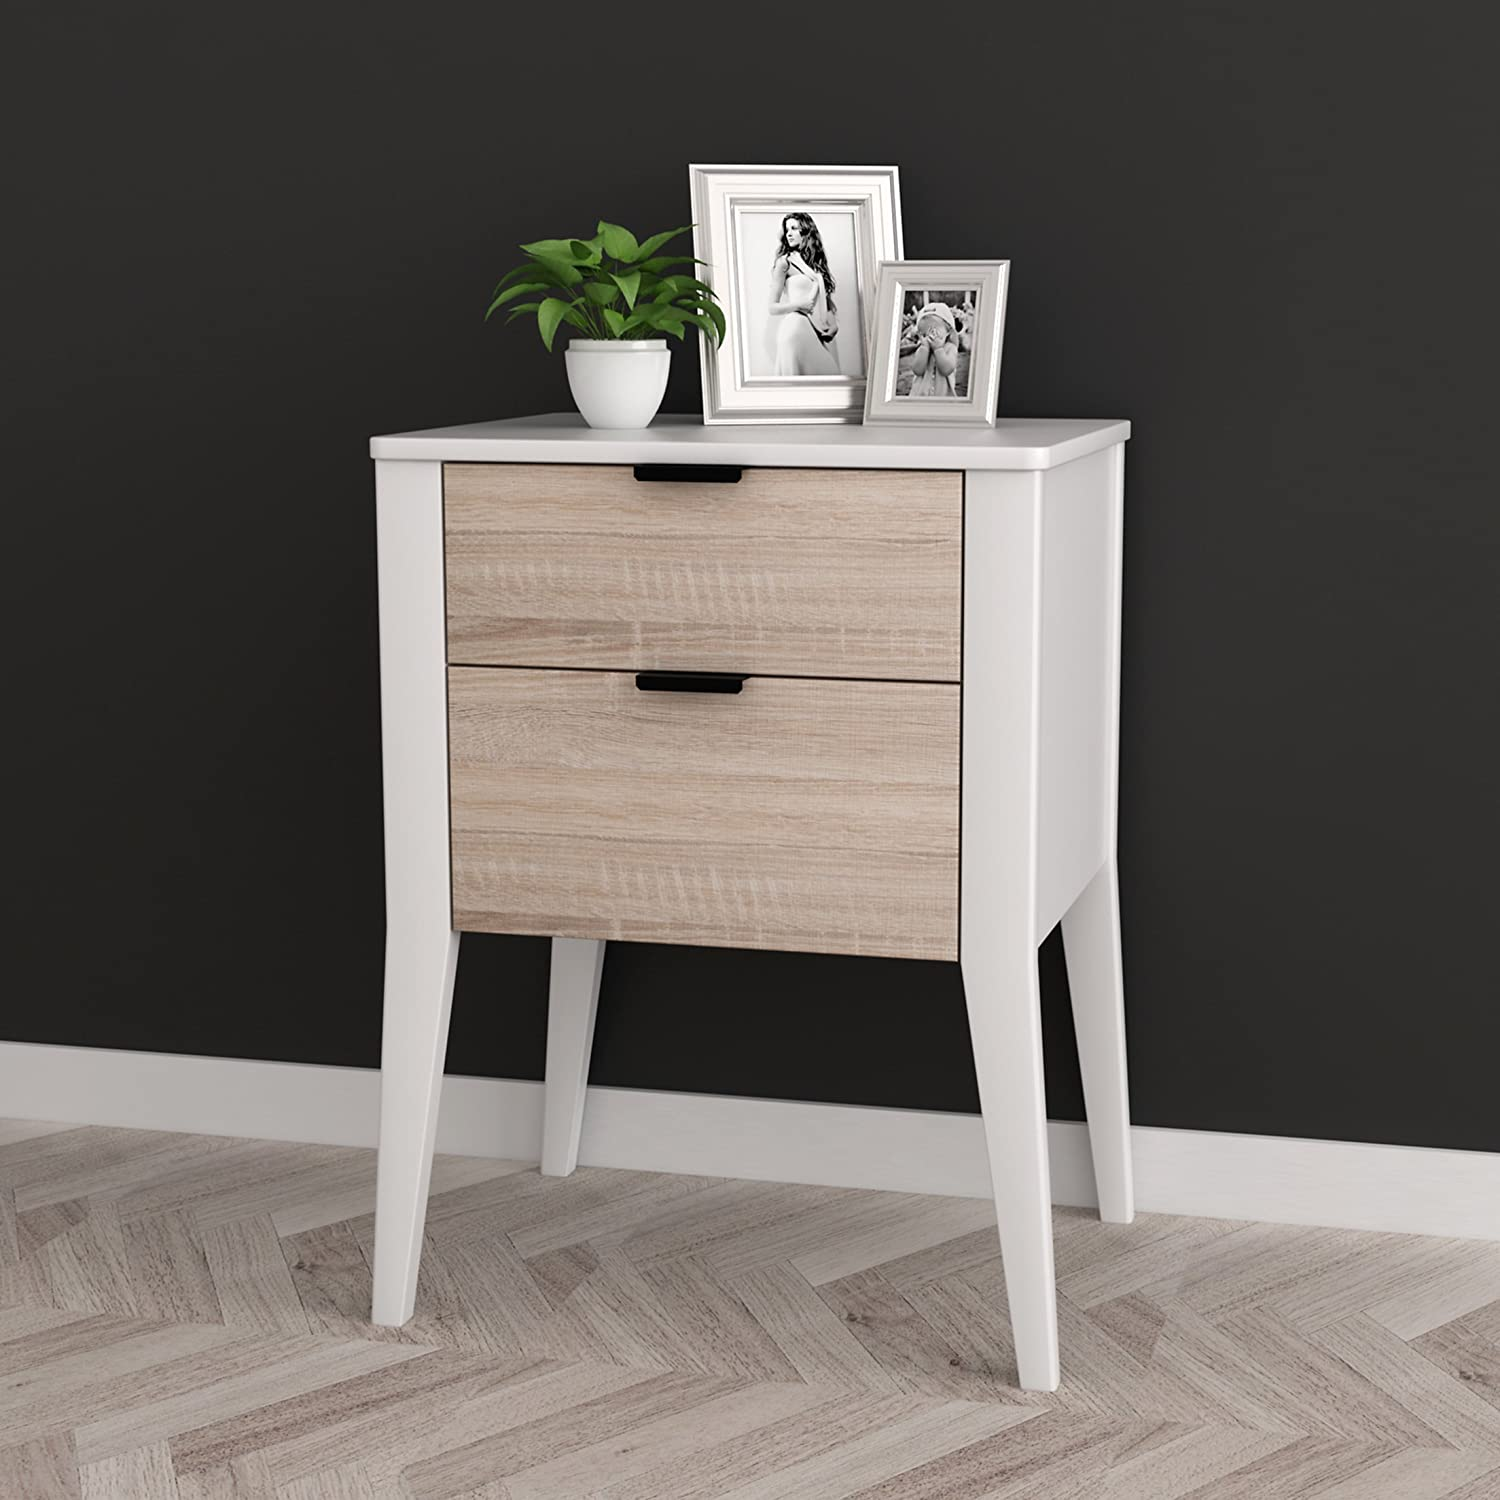 White   Sonoma Finish Oak Side End Table Nightstand with Two Storage Drawer 26 H